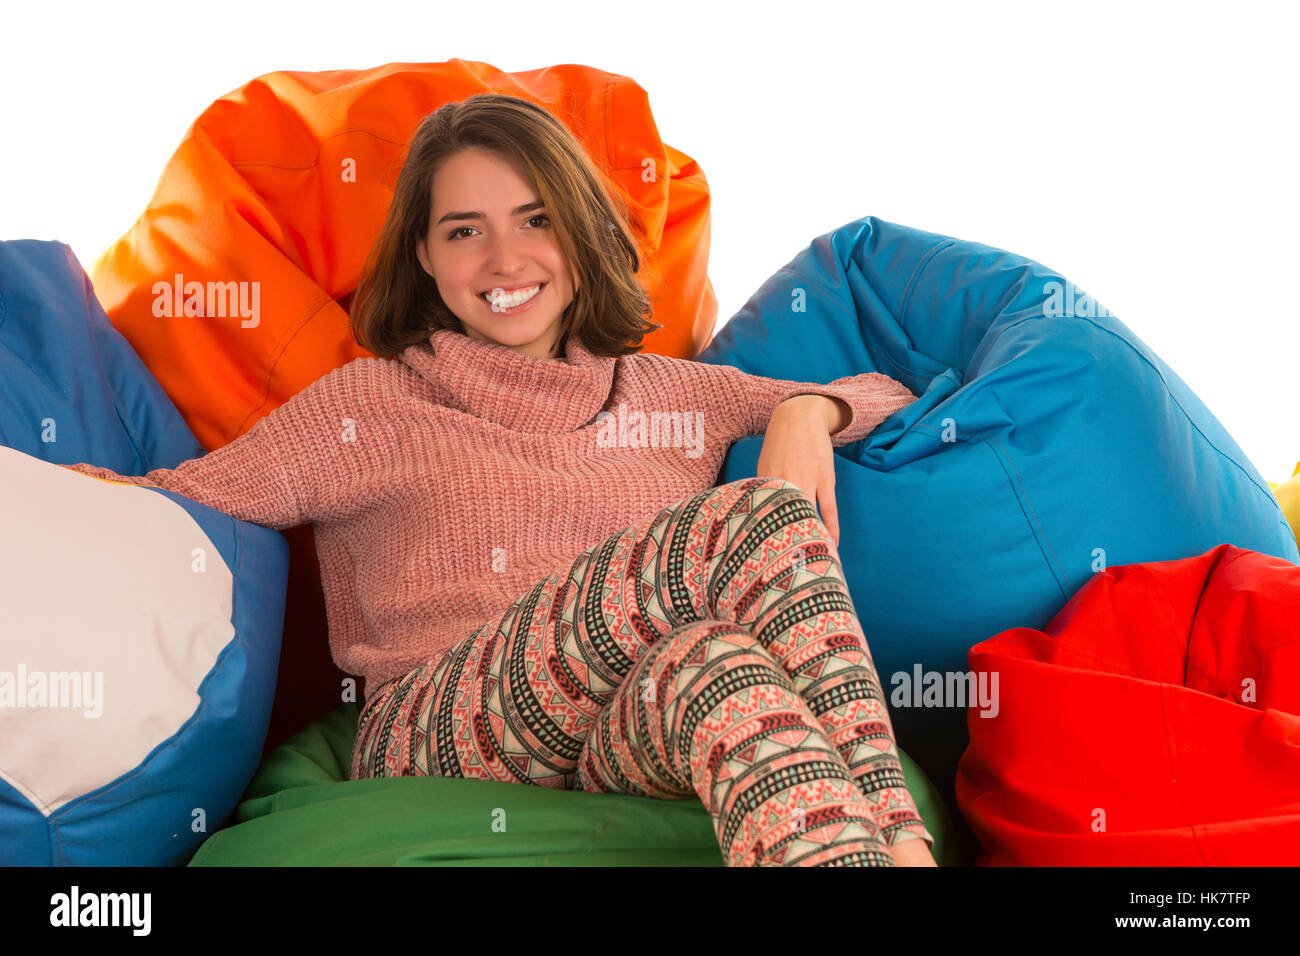 Young happy woman sitting between beanbag chairs isolated on white background - Stock Image